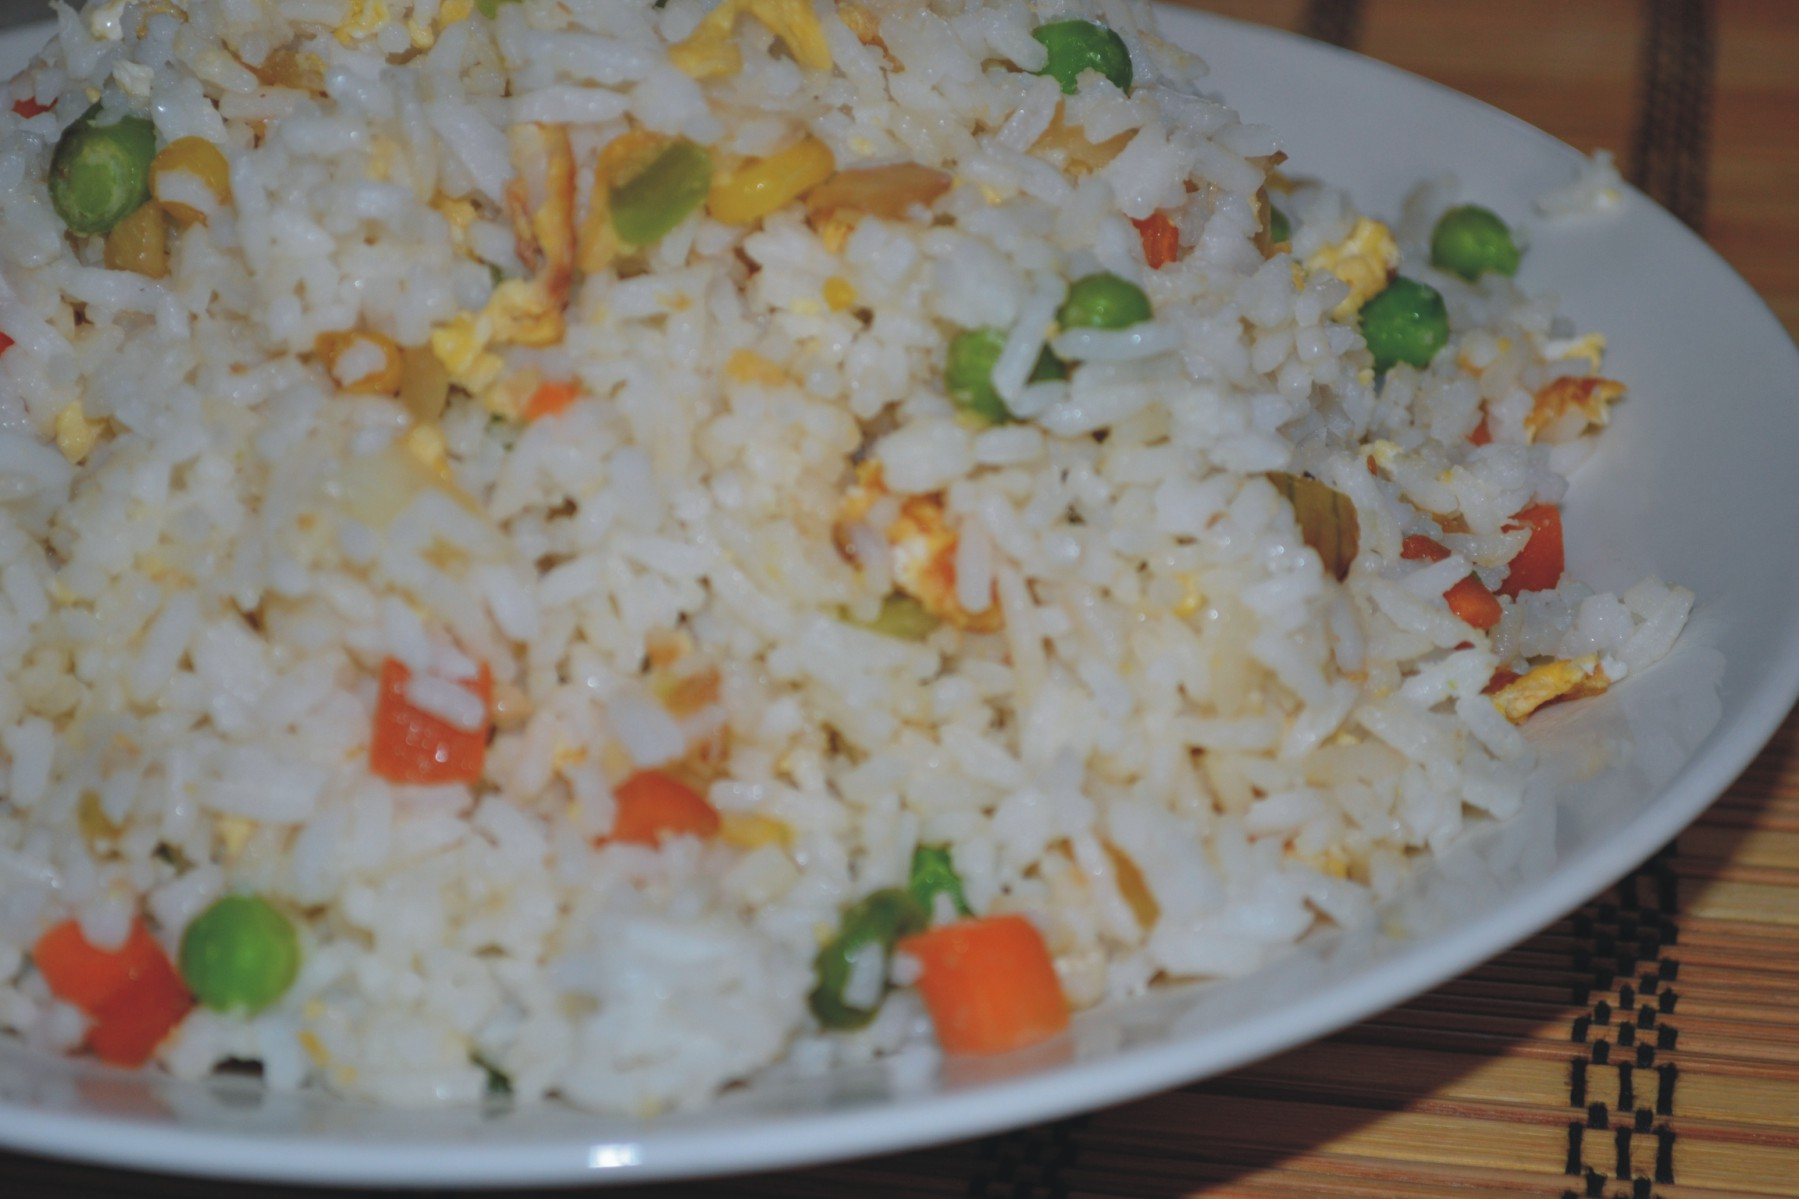 egg fried rice | Foodtrip.....by: nors vargas